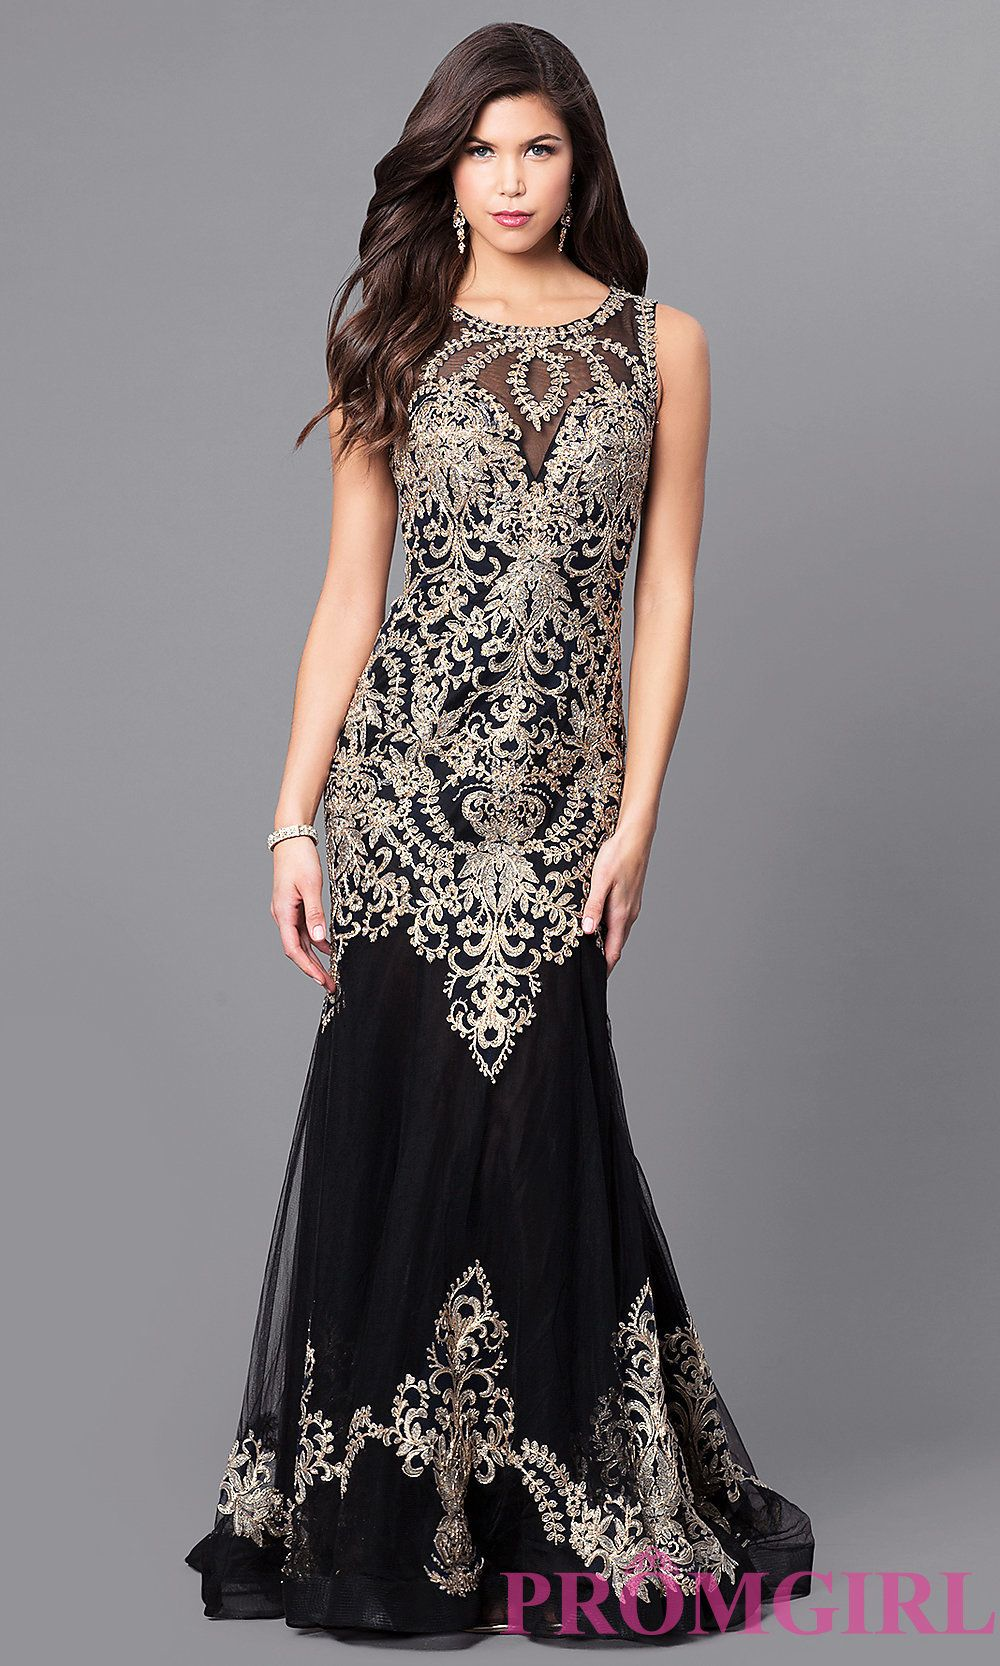 0c5fd4579e1 Lace Applique Long Prom Dress with Back Cut Out. I like Style FB-GL2307  from PromGirl.com